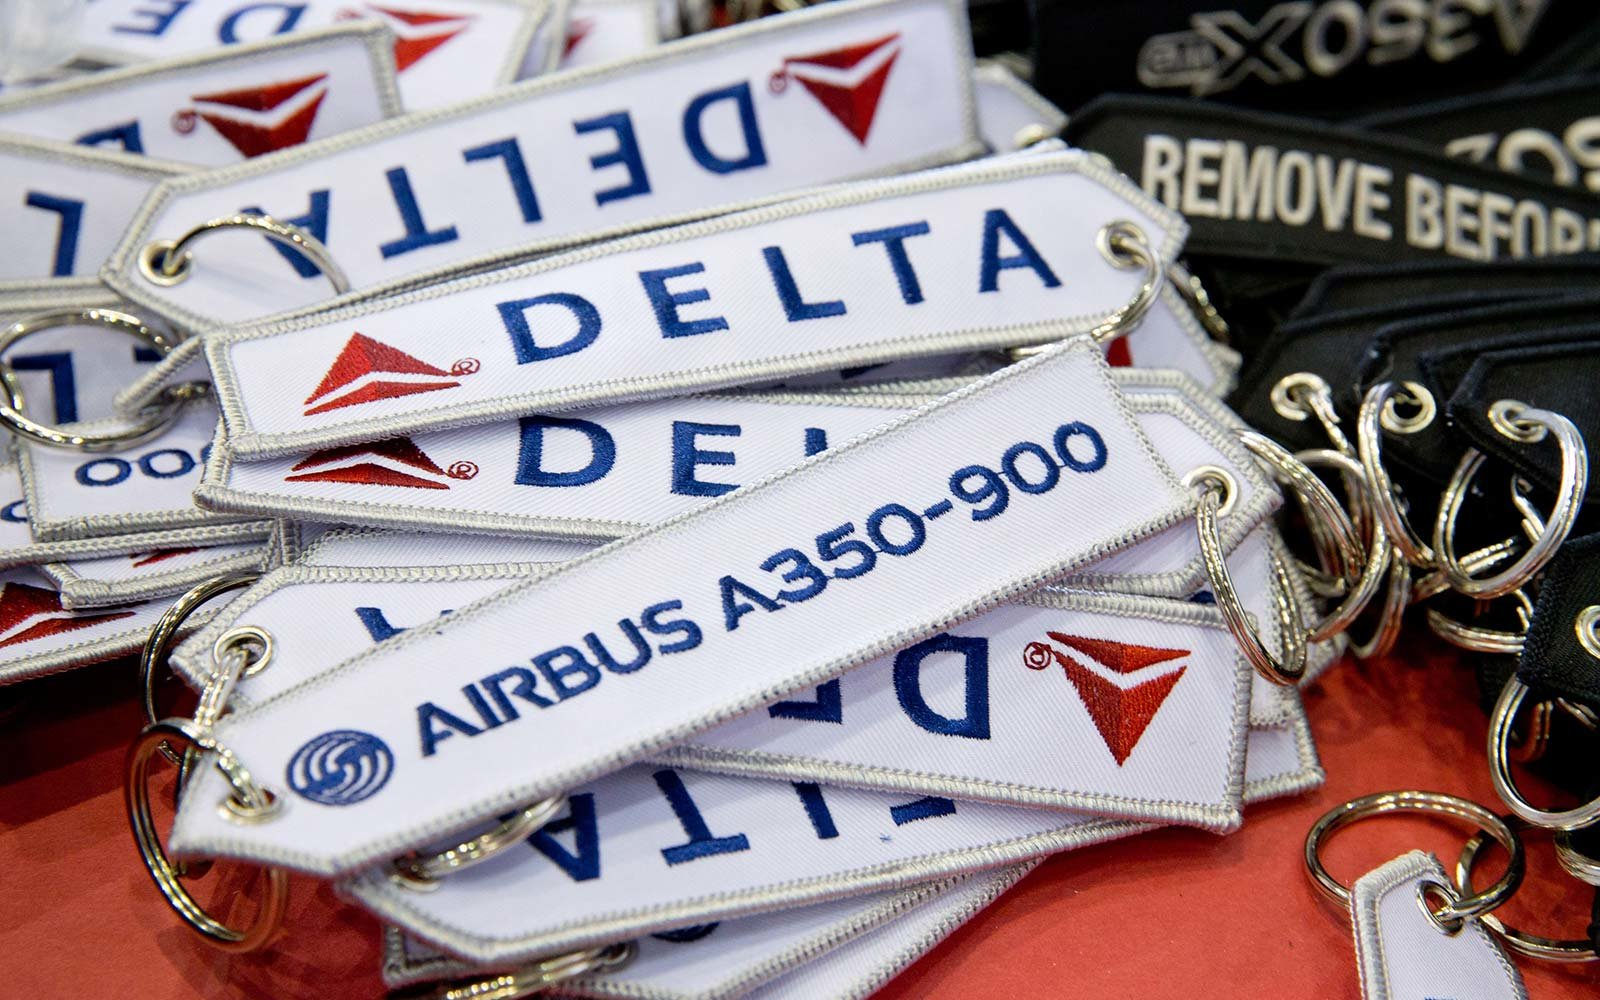 Delta Airlines Airbus A350 luggage flight tags